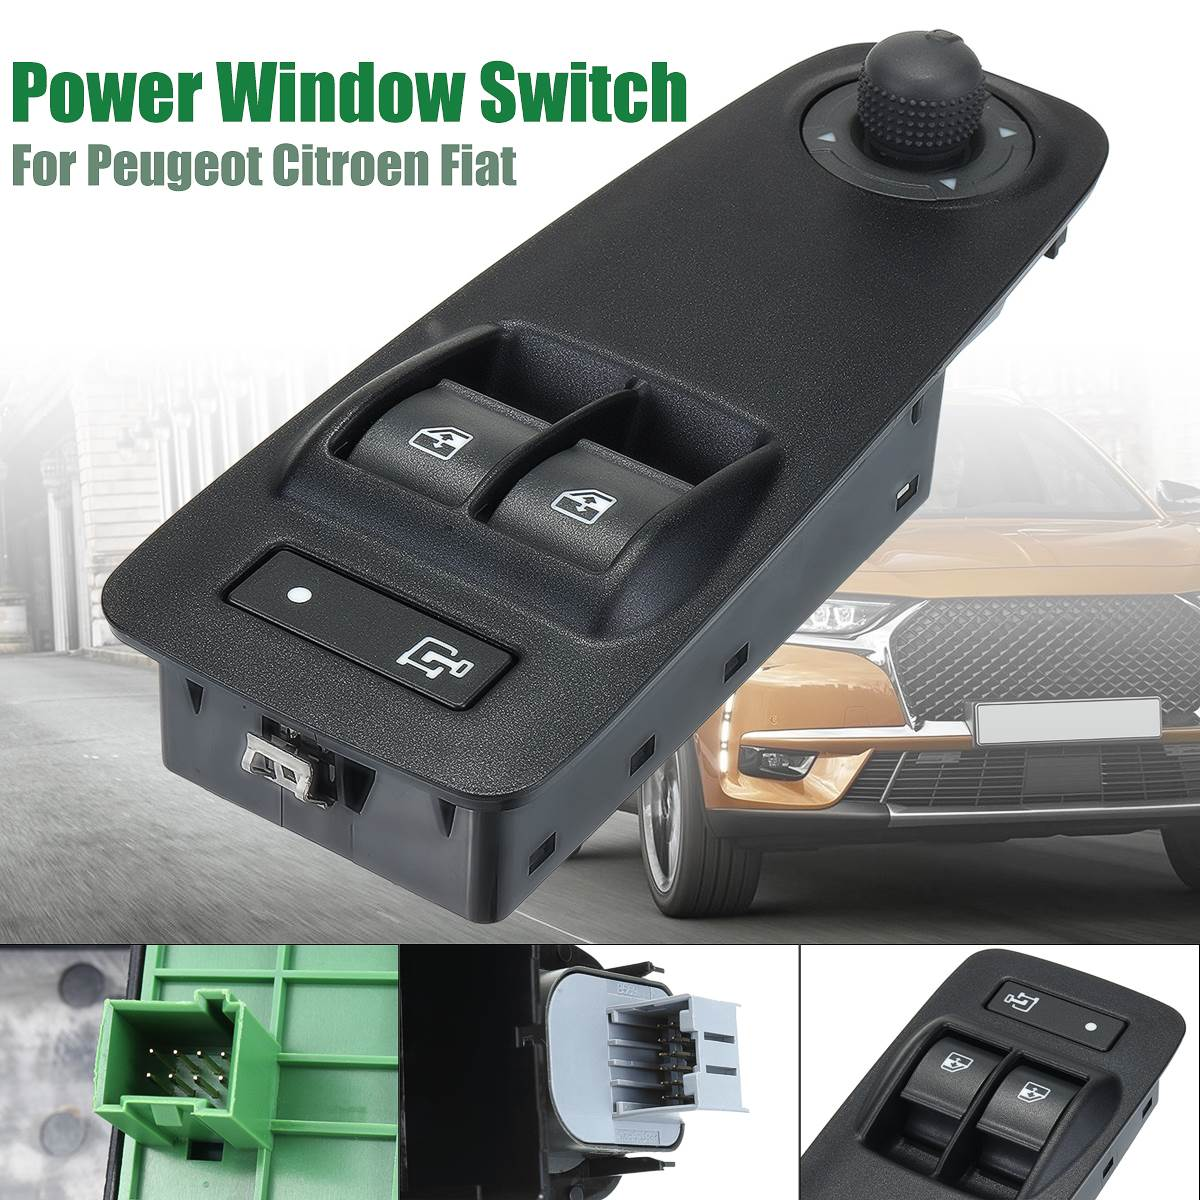 735487423 735487419 6490X9 Car Power Window Switch Black For Citroen/Peugeot/Fiat/Vauxhall Relay Boxer Doblo Ducato Combo MK3